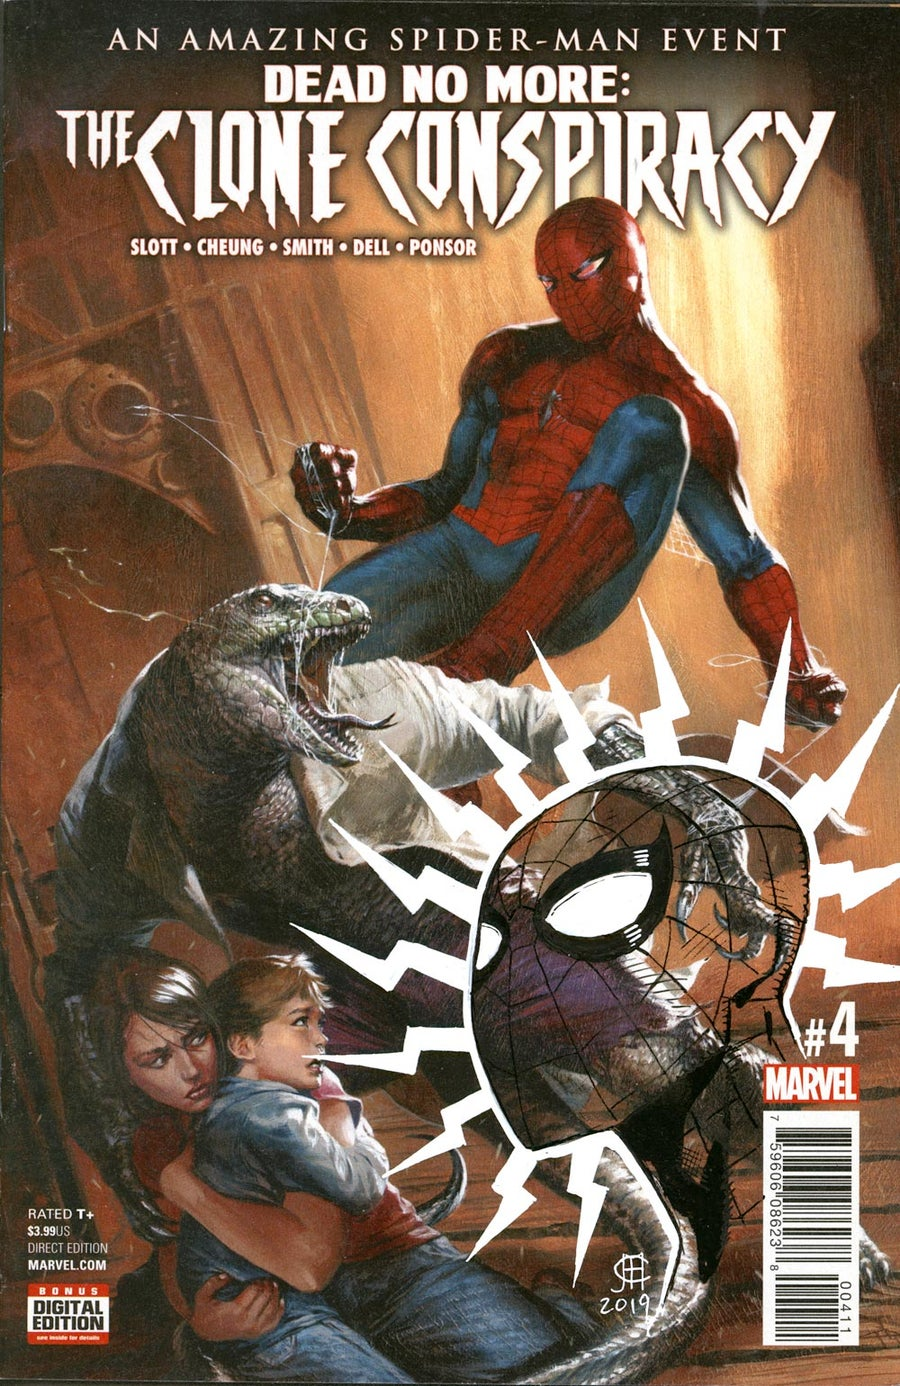 Image of THE CLONE CONSPIRACY #4 - Spider-Man Remarque